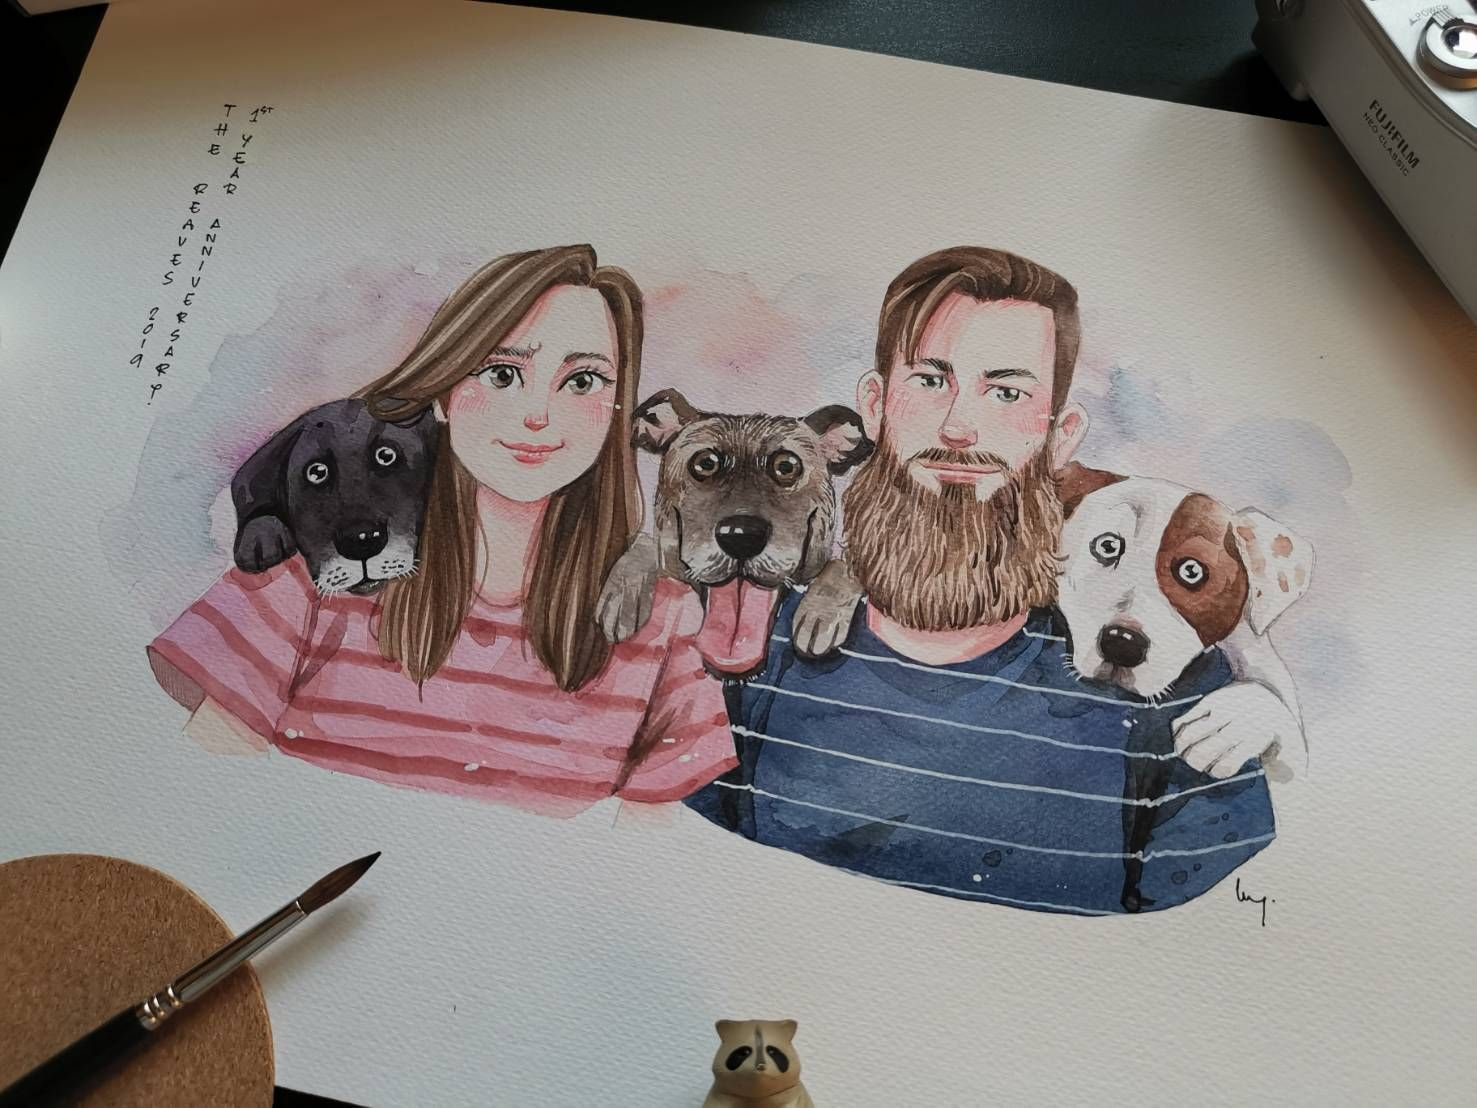 Photo to Cartoon Family Portrait with Pets. Family Caricature Pet and  Owner. Cartoon Character Portrait with Dog. Pet Family Portrait | Photo to  cartoon, Family pet portraits, Family cartoon